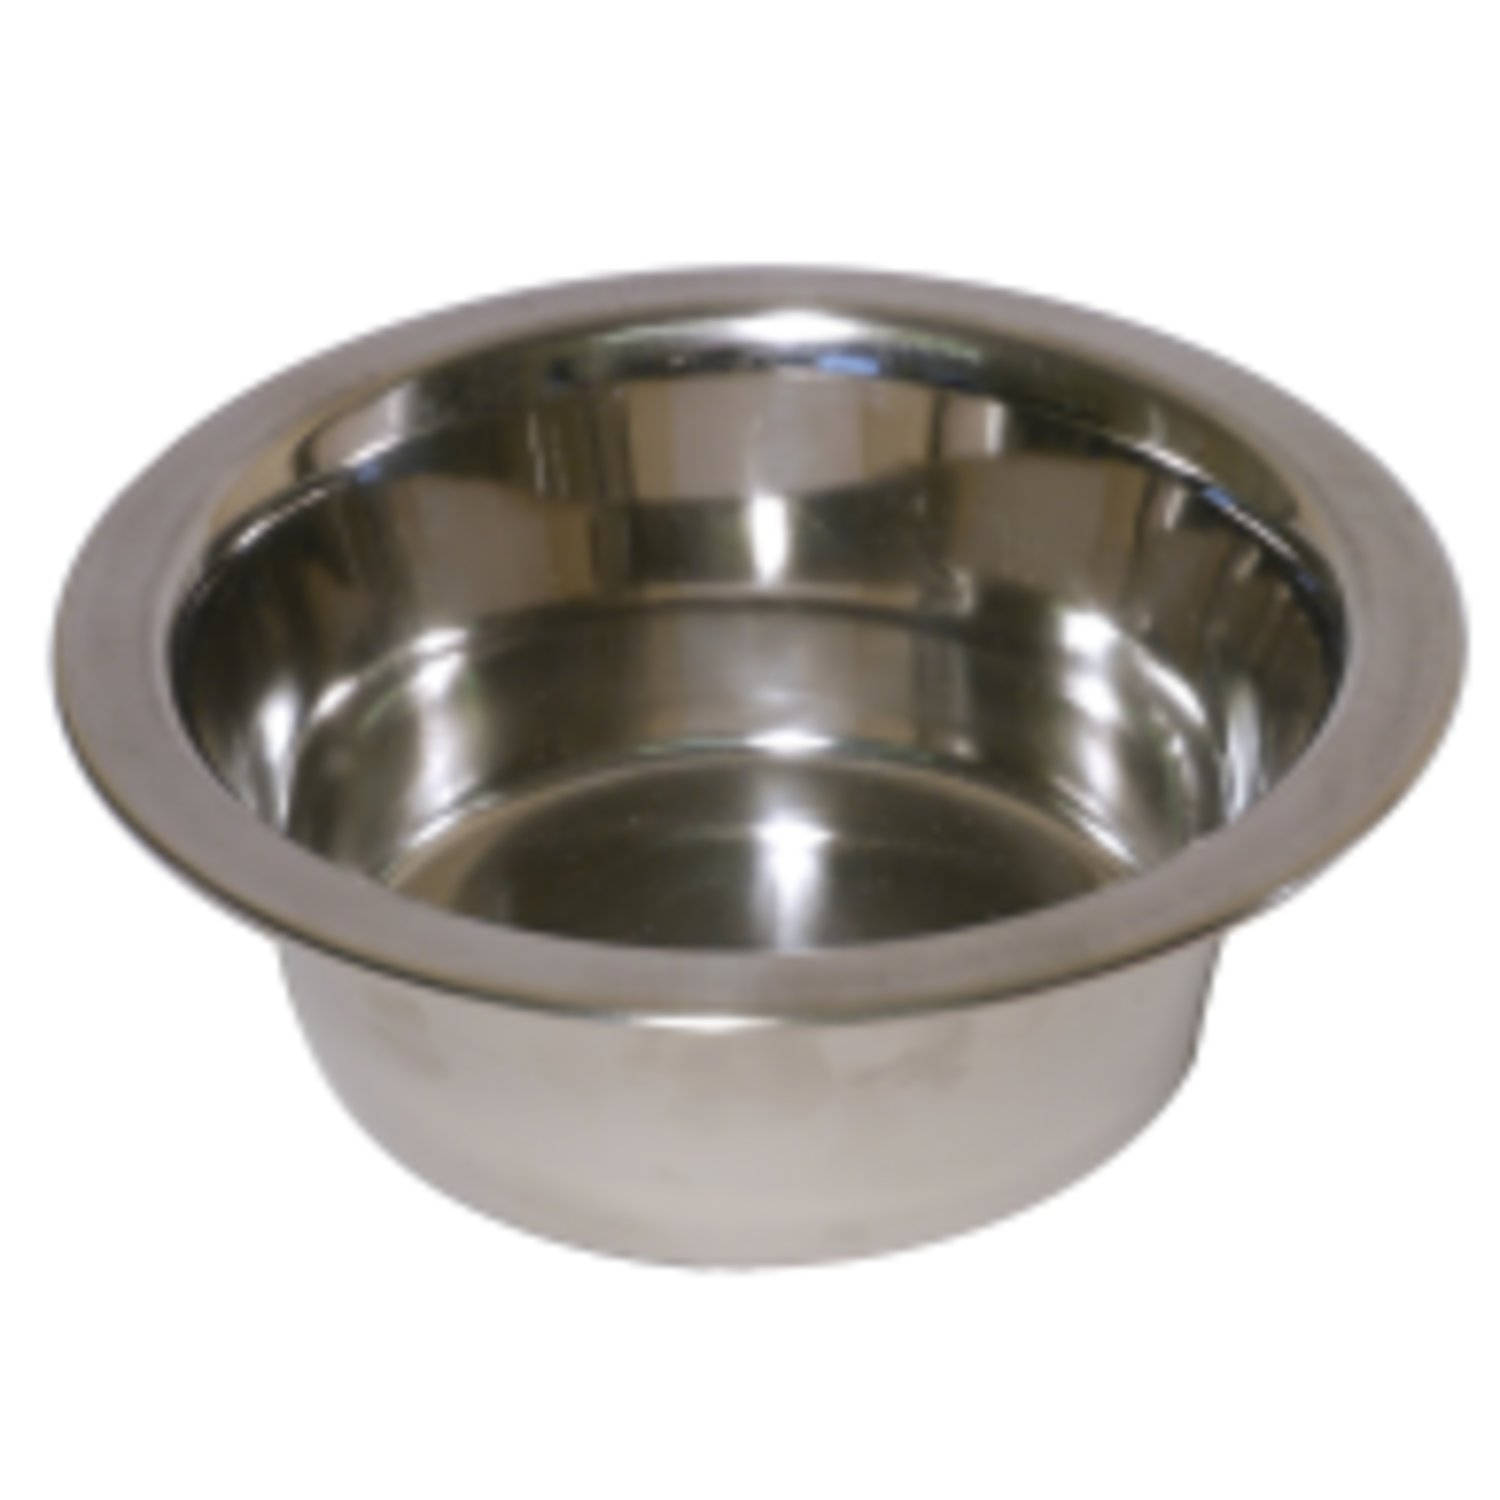 Rosewood Deluxe Stainless Steel Dog Bowl